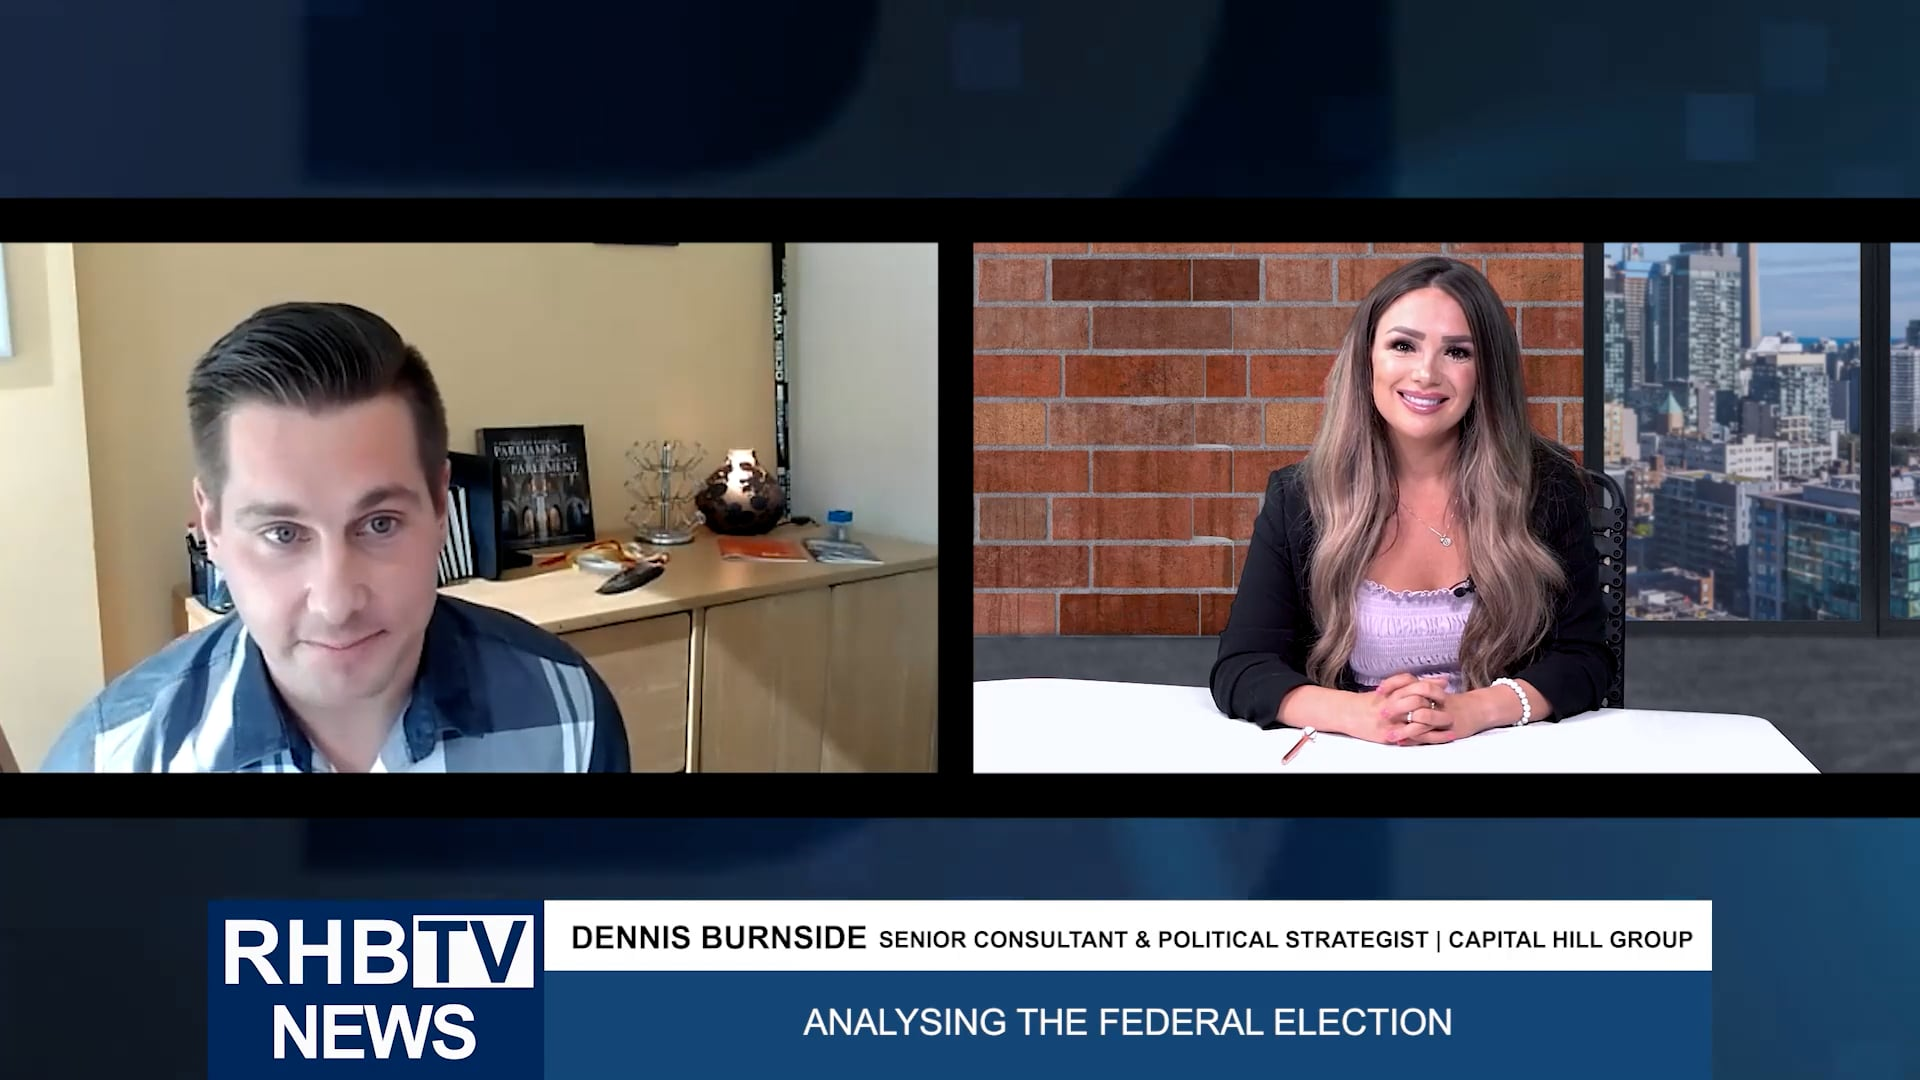 Analysing the Federal Election with Dennis Burnside 2/2